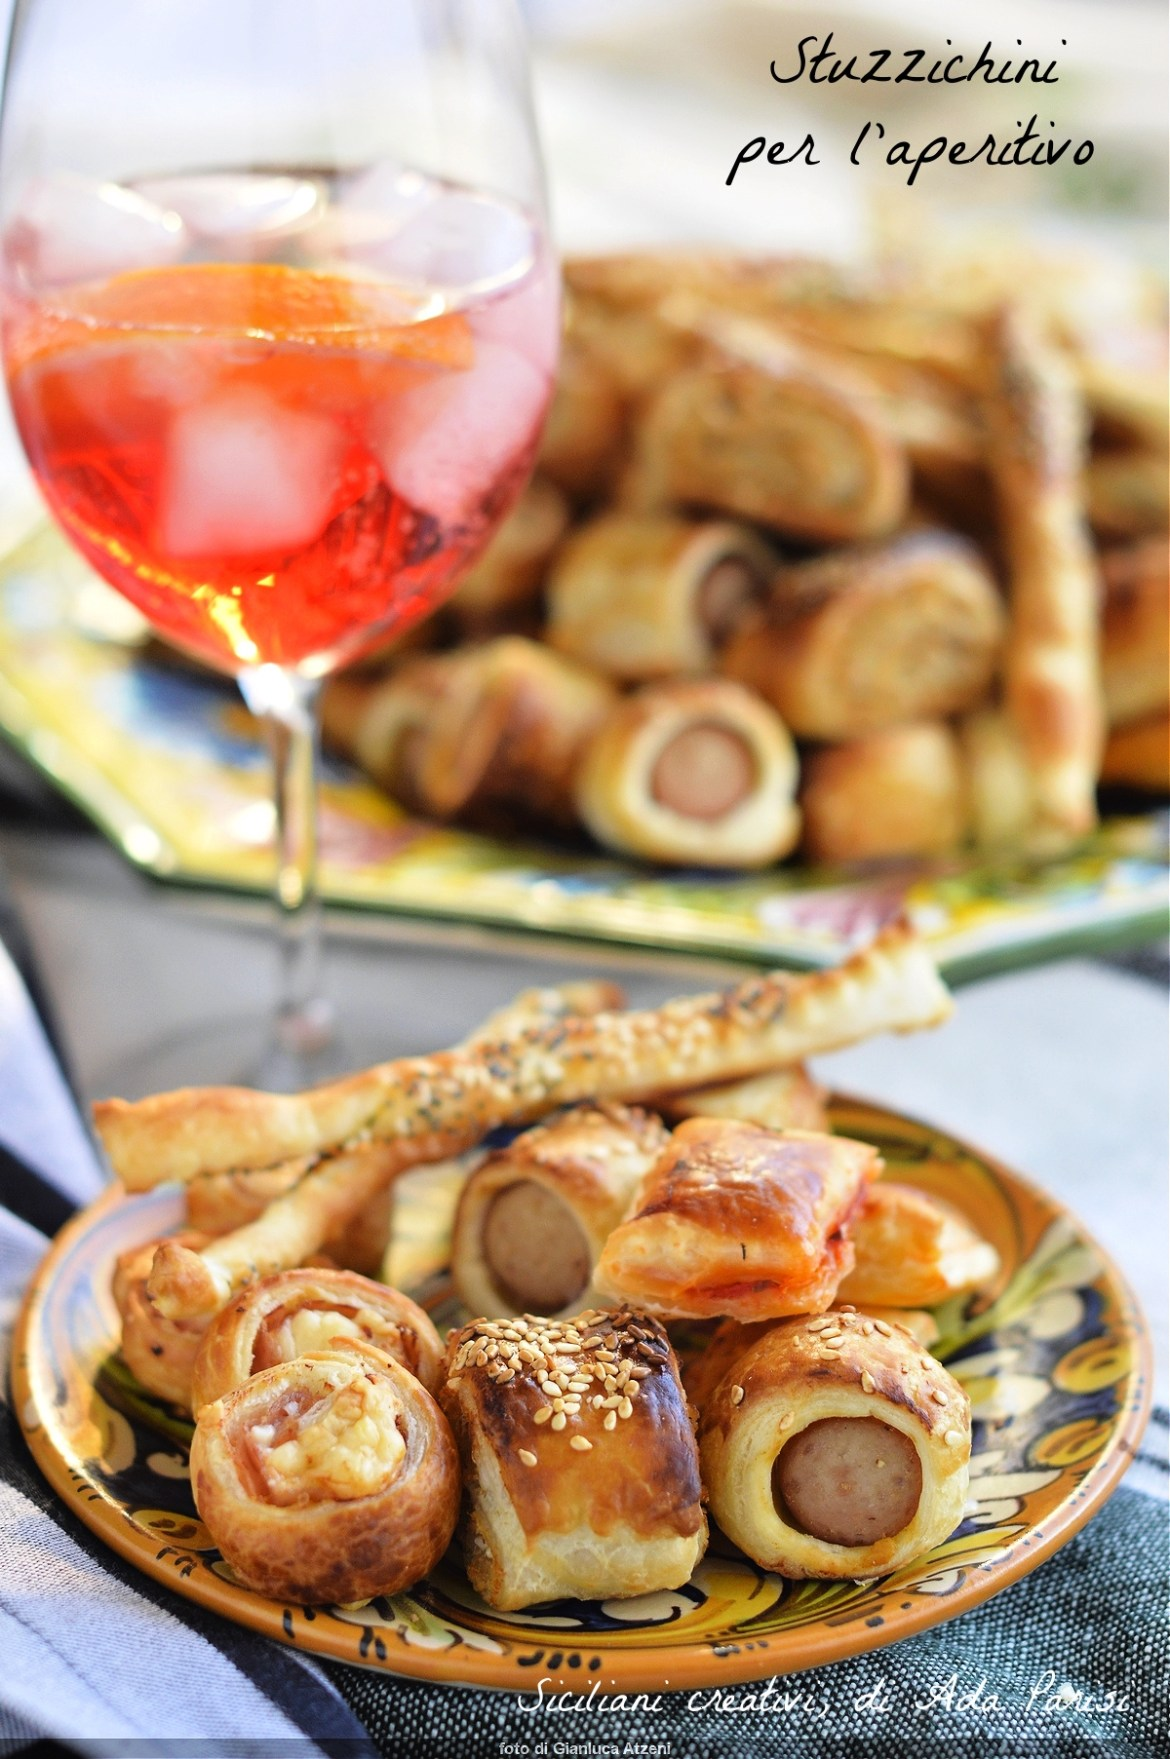 Stuzzichini per l\'aperitivo: 5 recipes with puff pastry